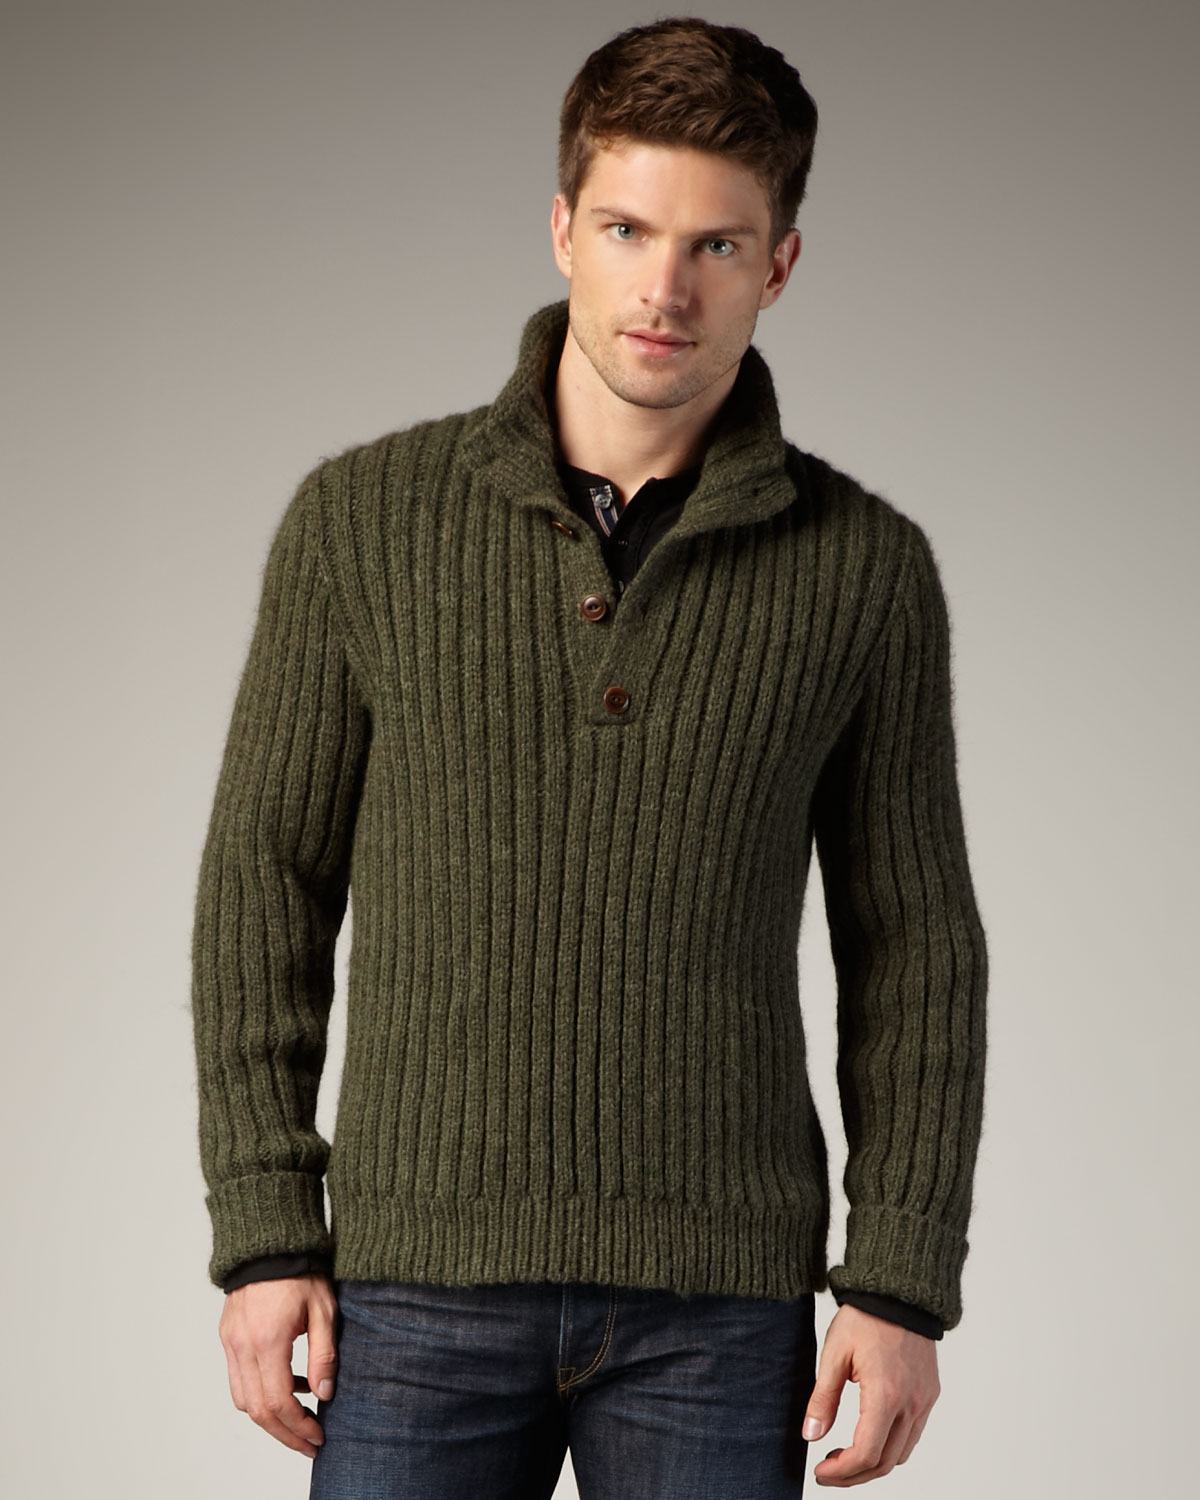 This warm knit sweater is made with soft Merino Wool and features rain-repellent reinforcement on the yoke and arms. It's built to last through years of use, with yarns highly twisted that resist piling. With its ventilating four-button placket on the nec/5(34).